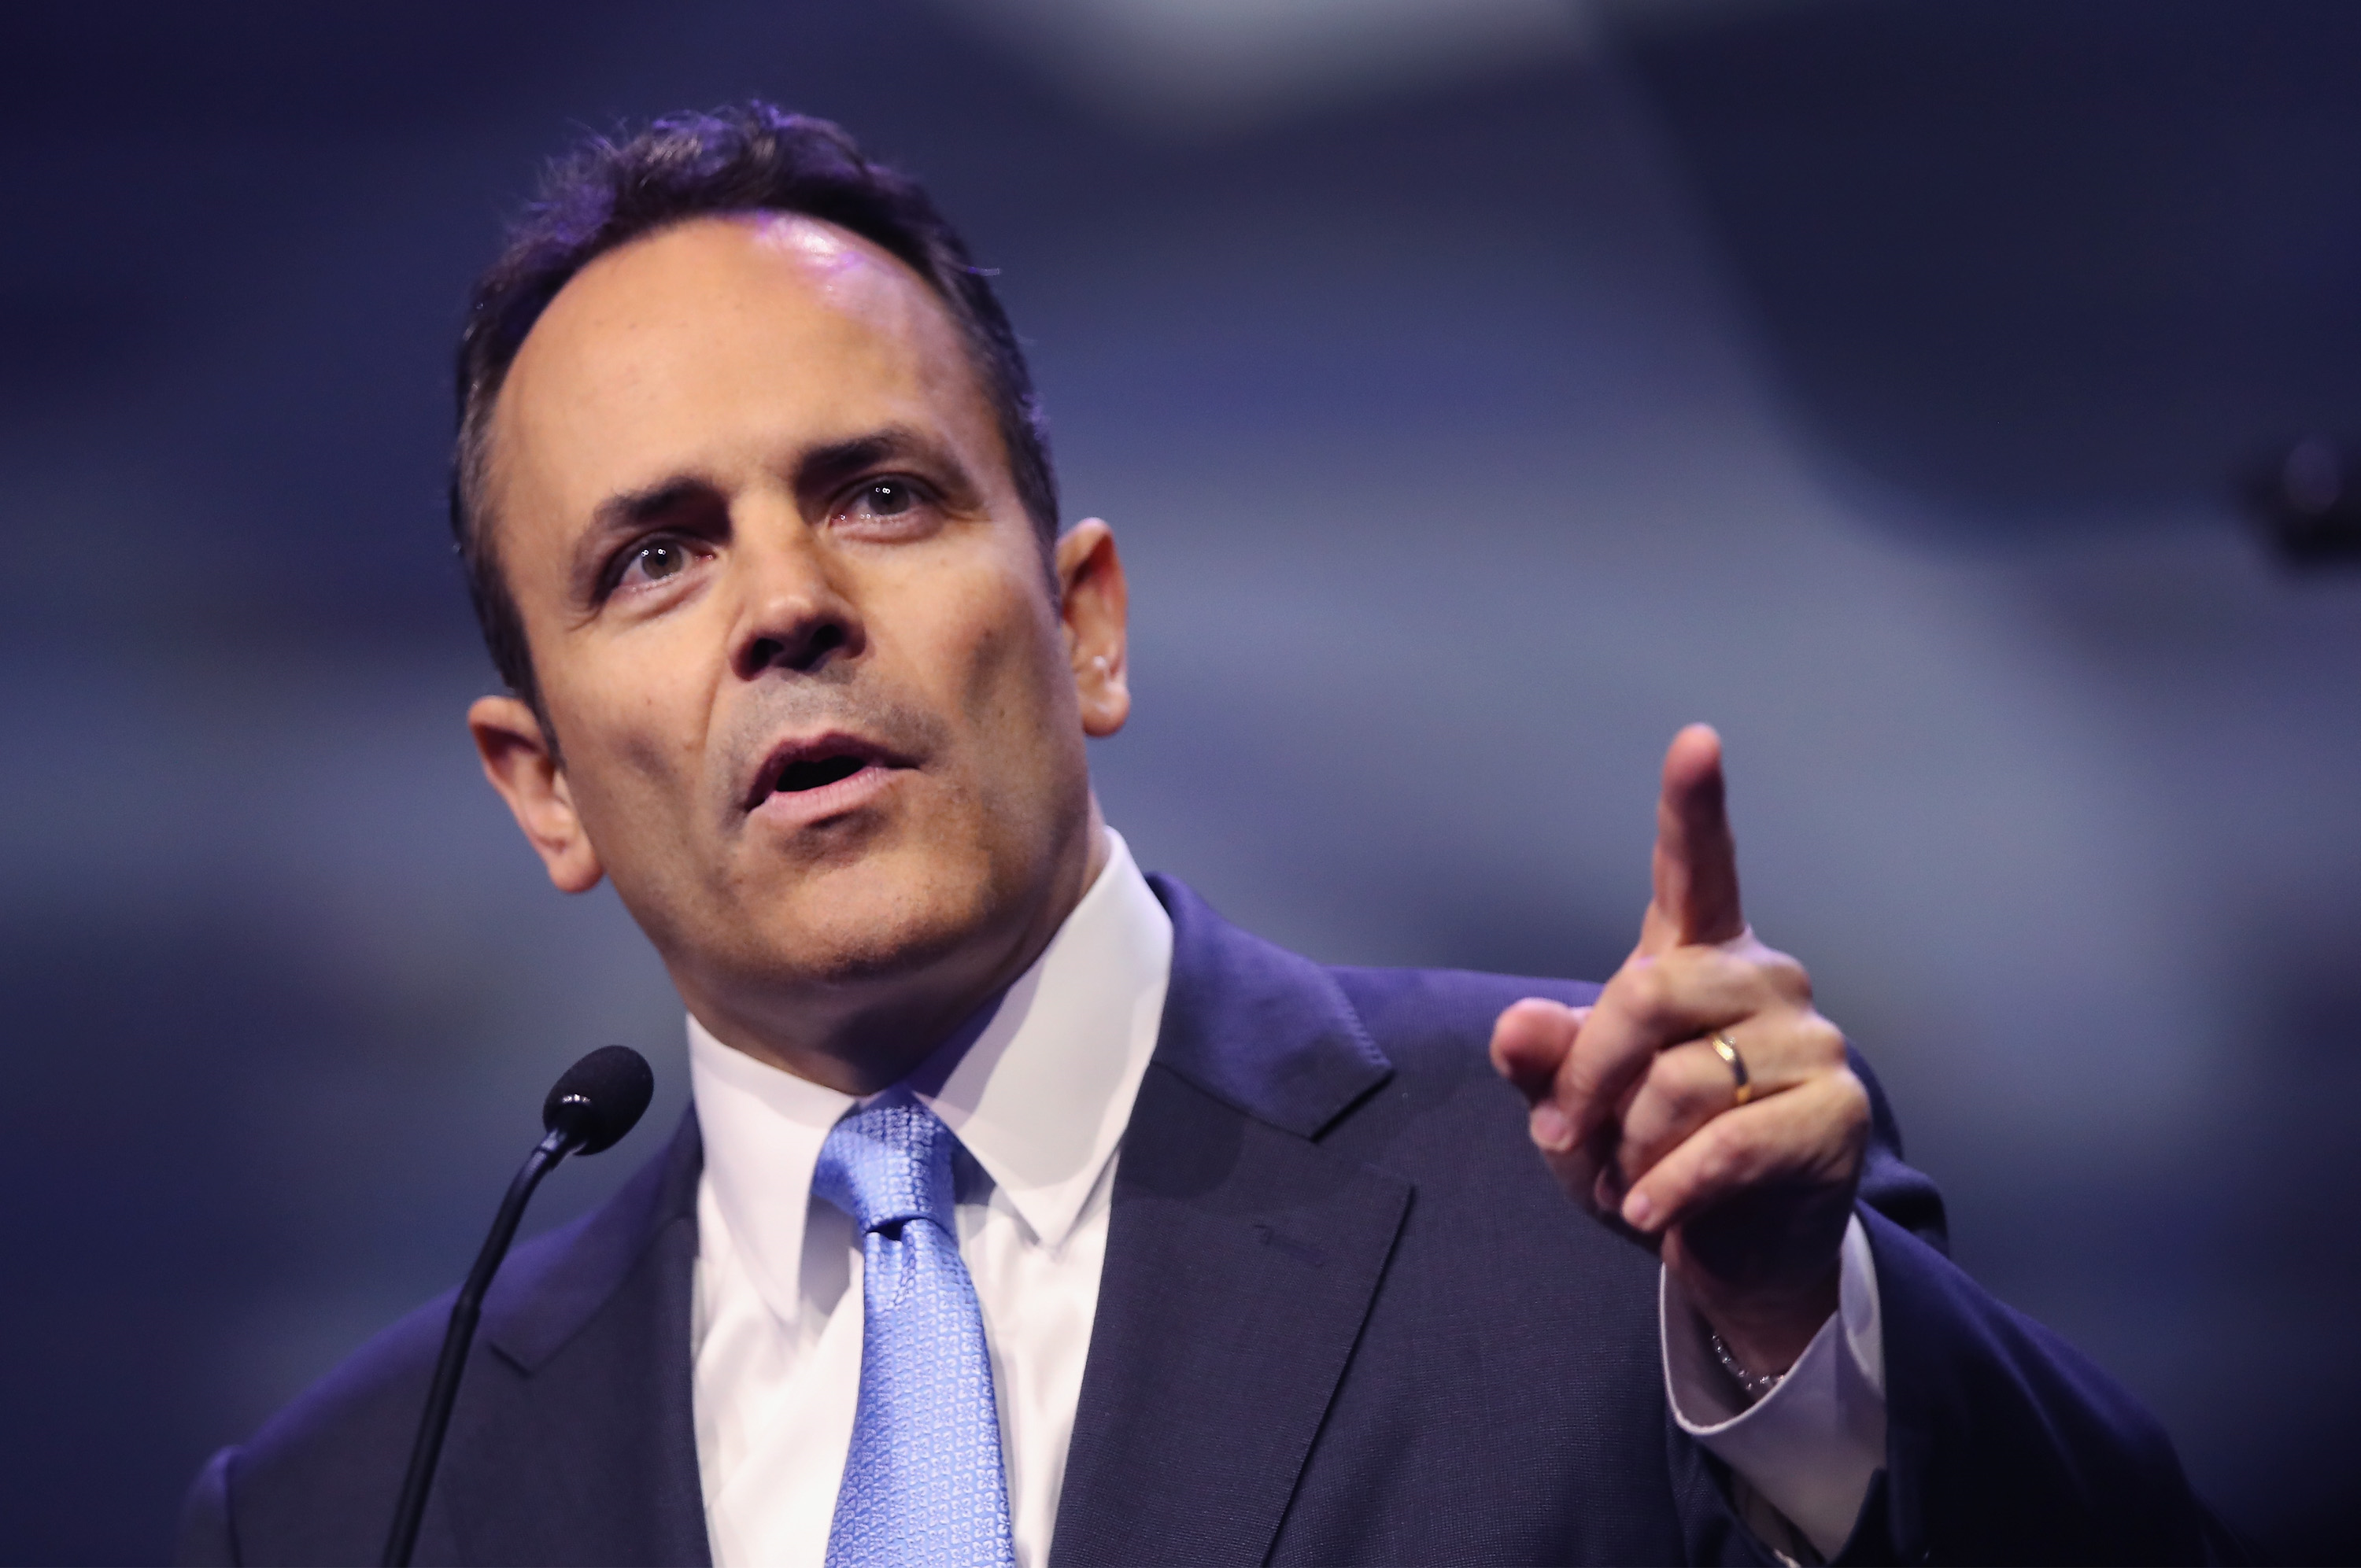 Kentucky Governor Blames Violent Video Games For Shootings